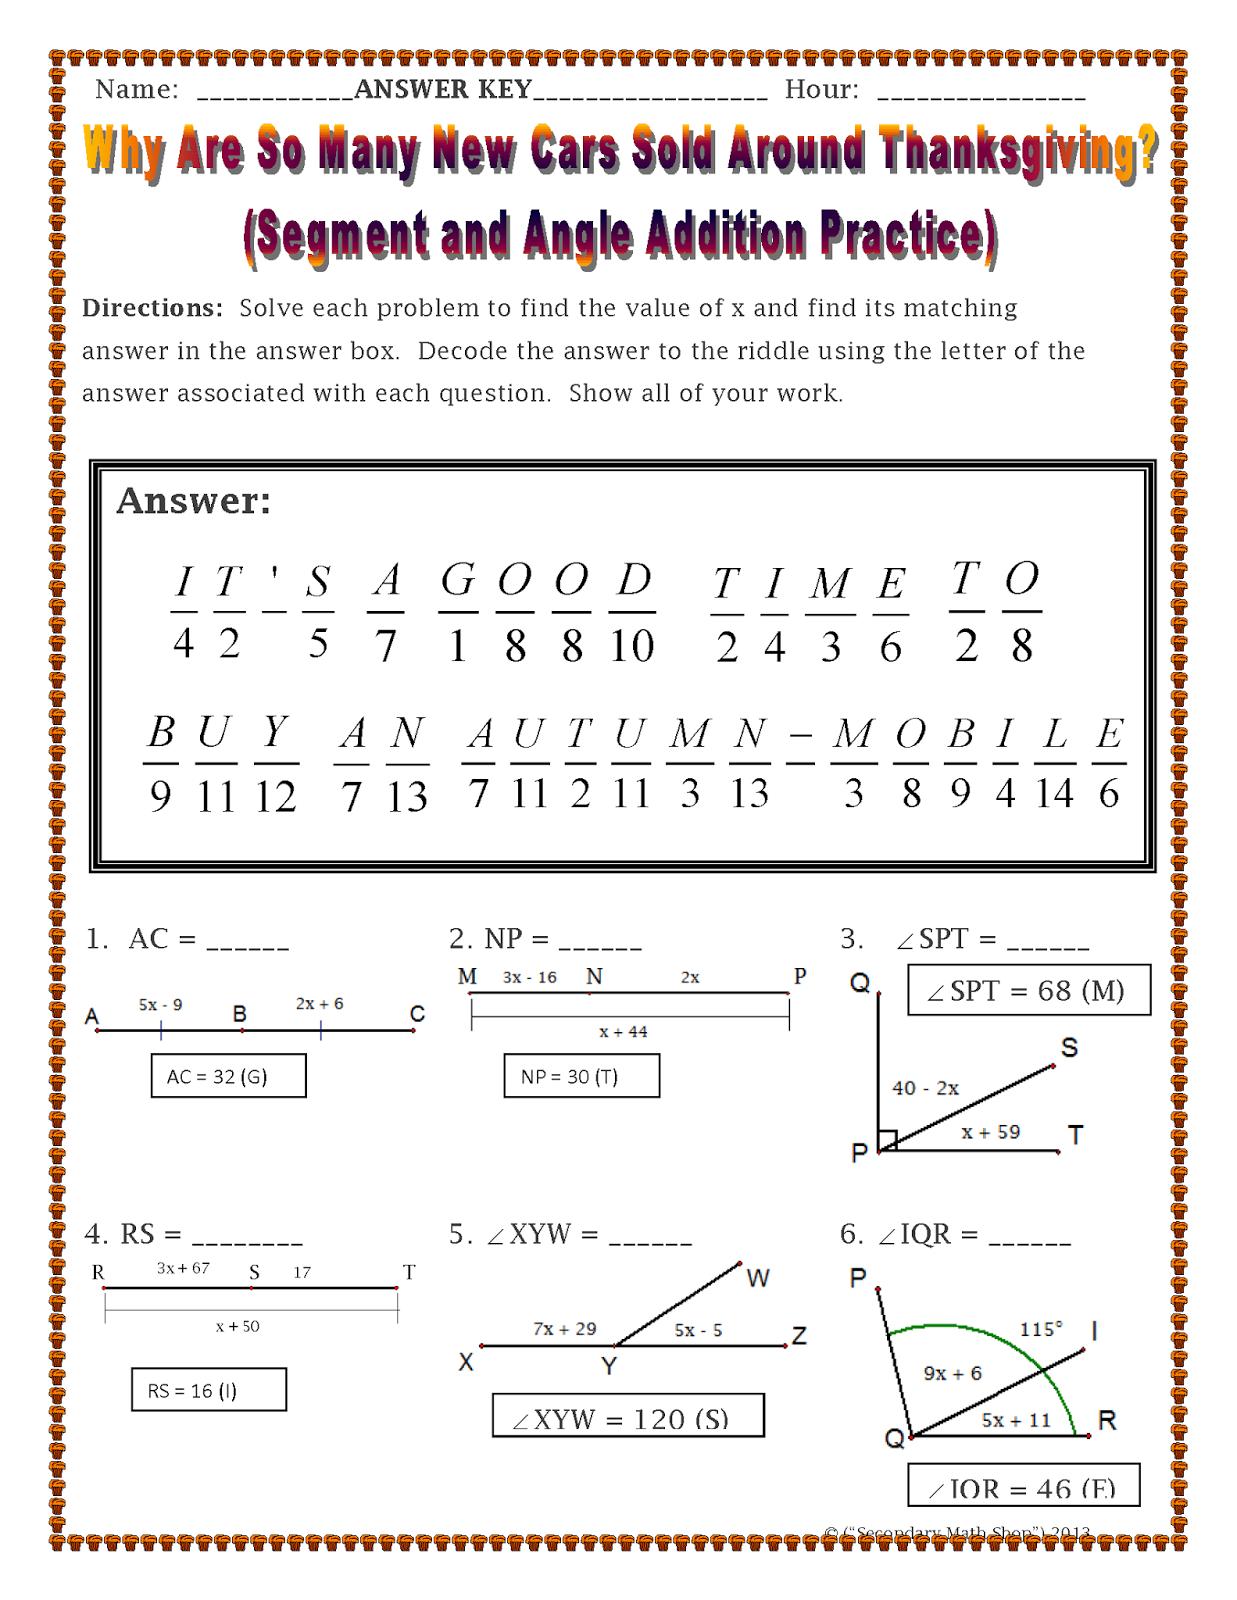 Free Worksheet Angle Addition Postulate Worksheet the spectacular world of secondary math november 2014 segment and angle addition